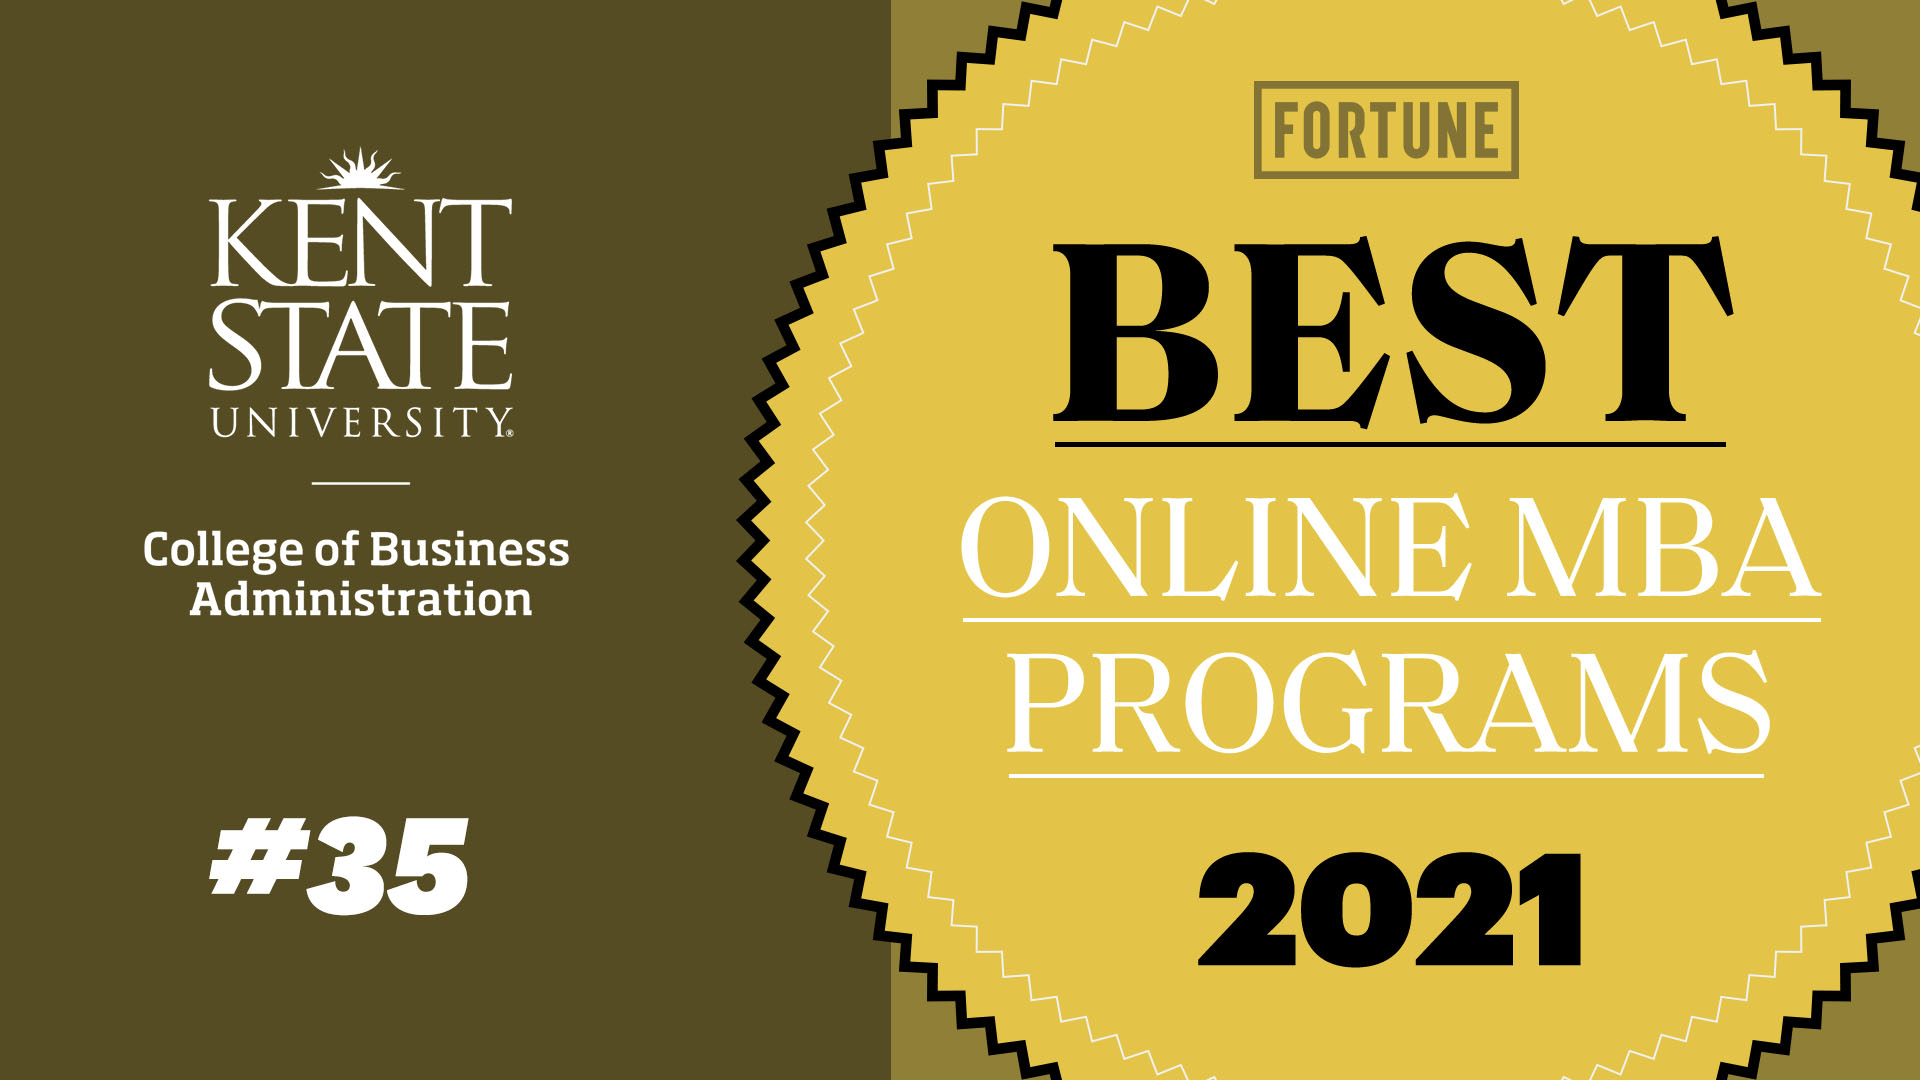 Graphic for Fortune's Best Online MBA Programs 2021